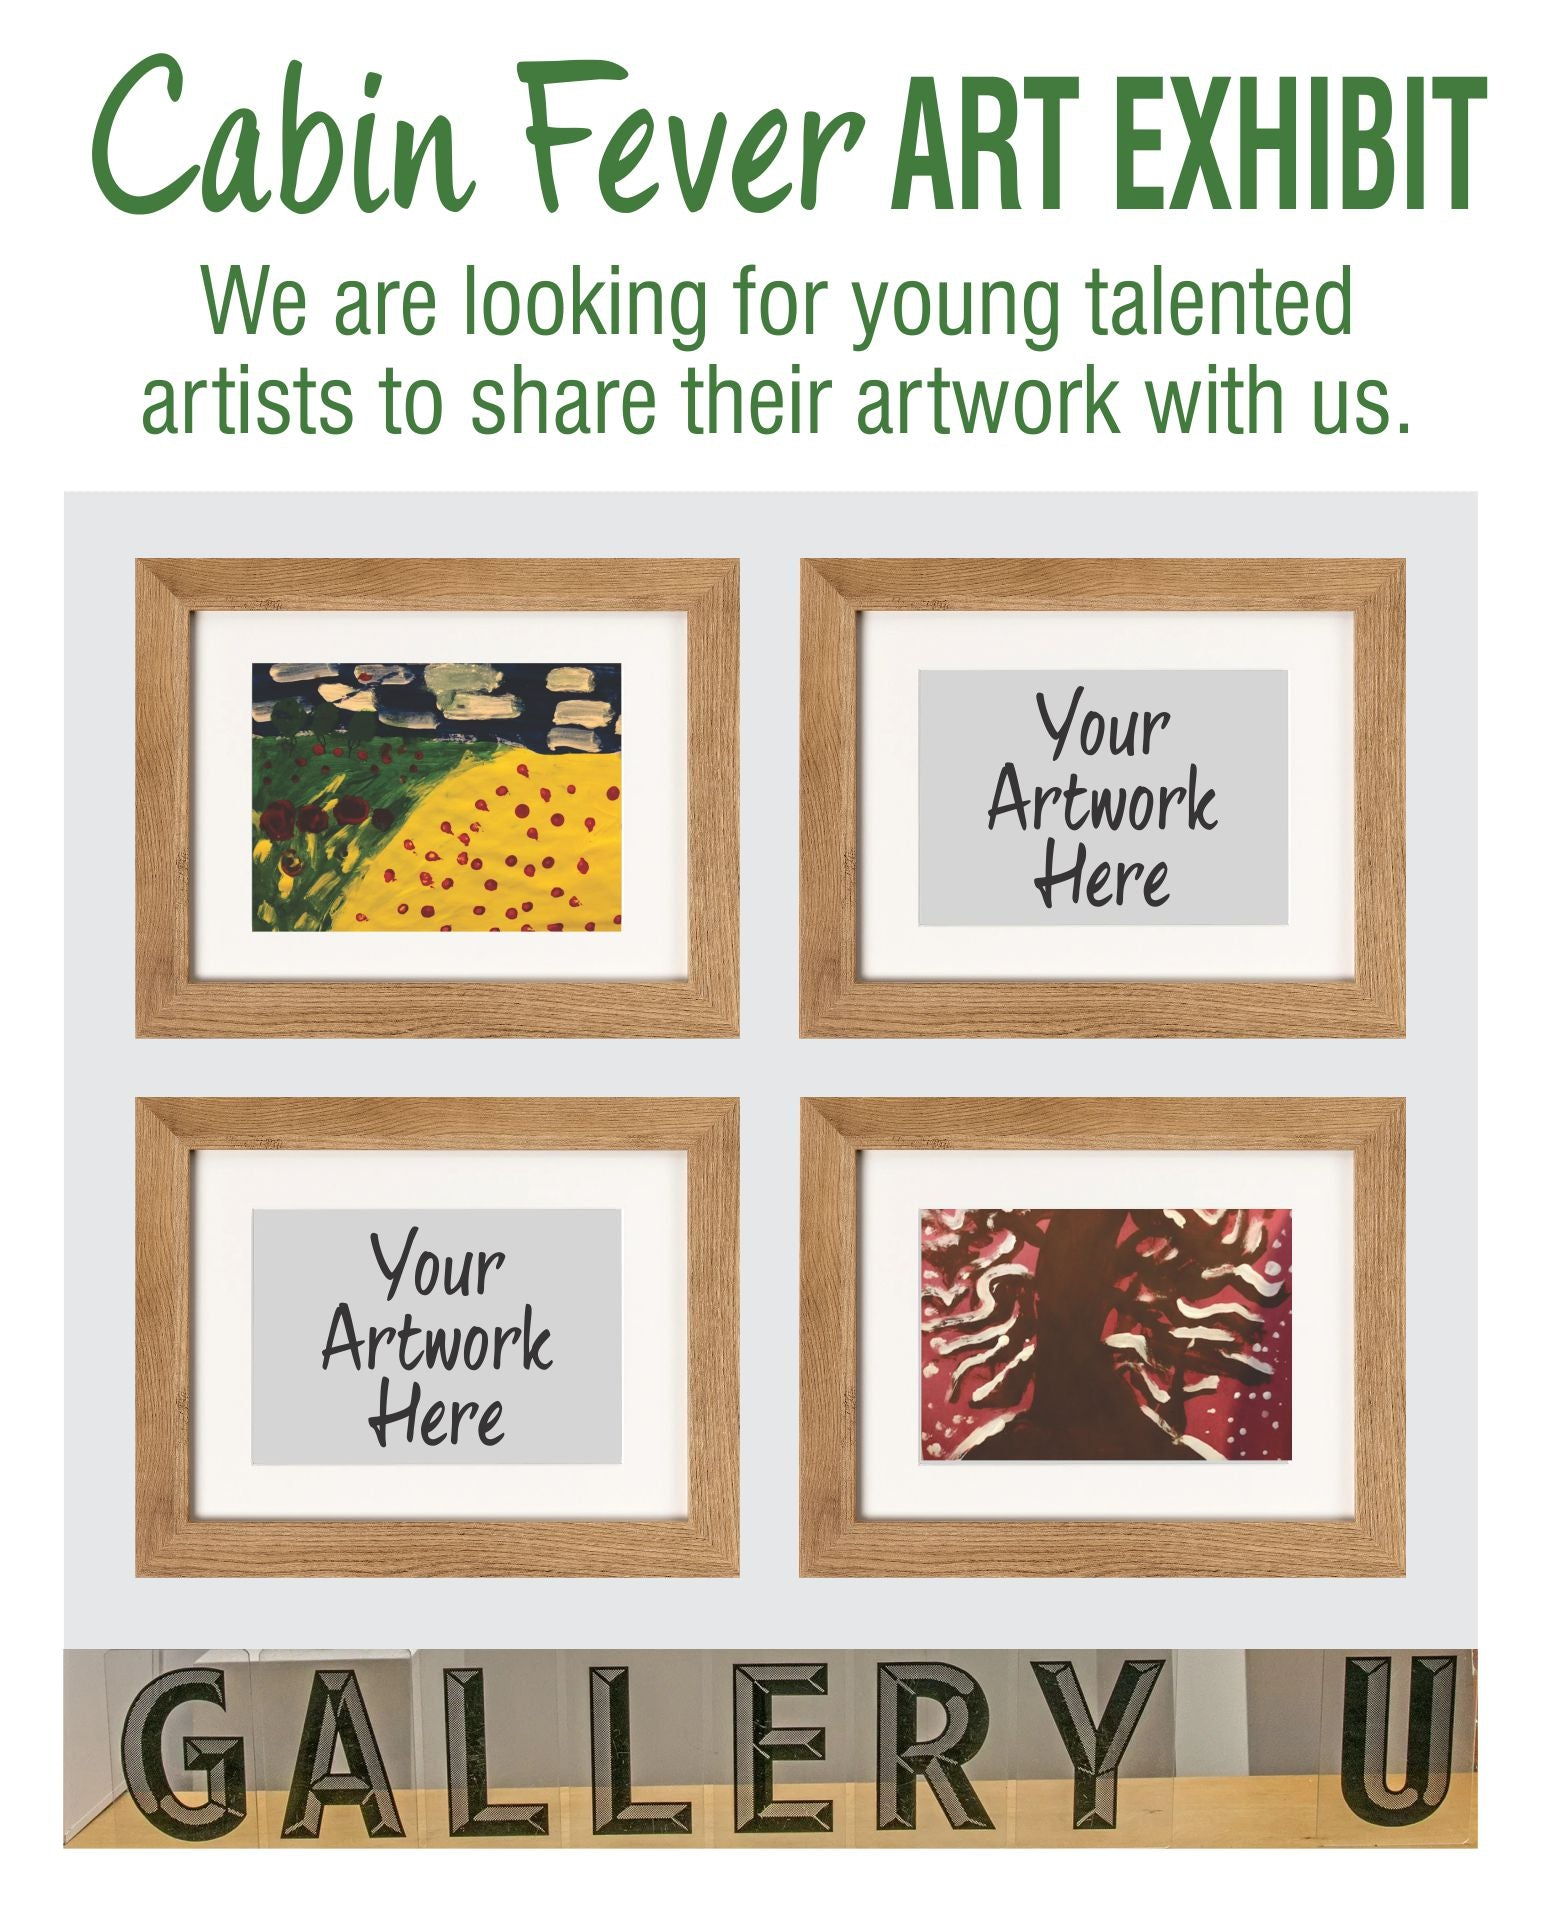 Cabin Fever Art Exhibit - We are looking for young talented Artists!